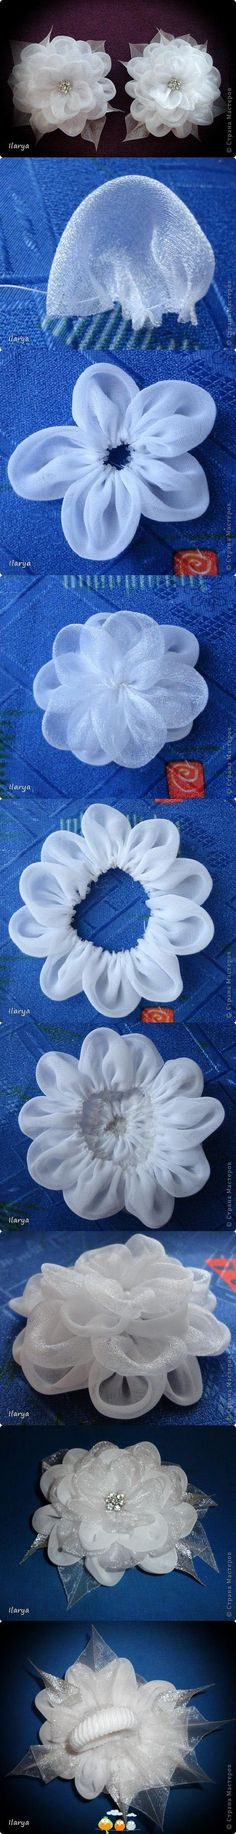 Sheer fabric flowers.                                                                                                                                                      More